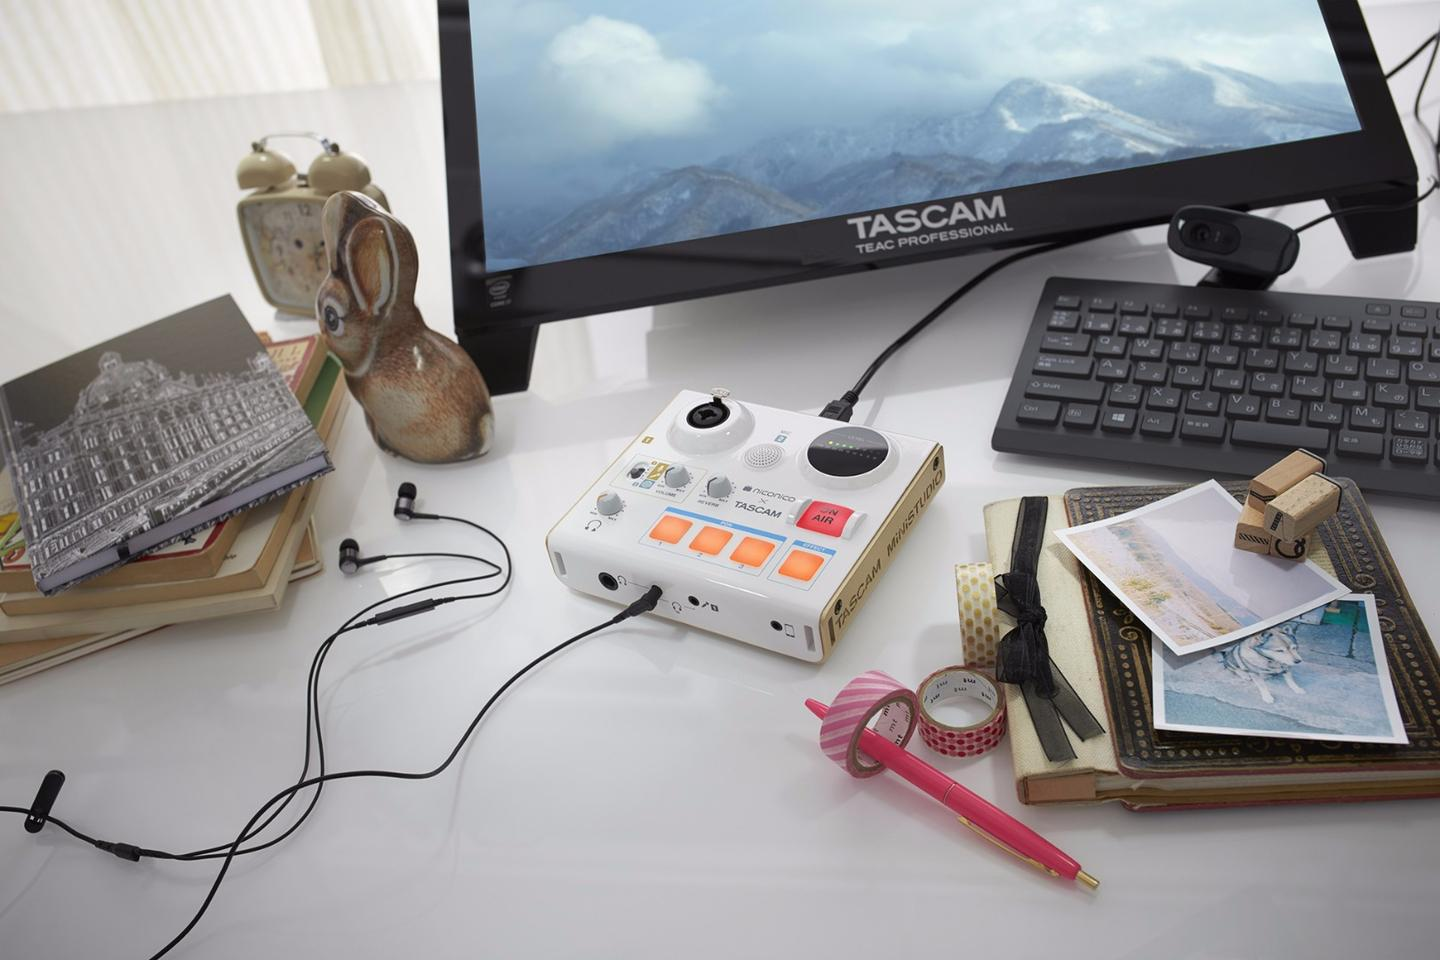 The Ministudio Personal editionhas both a built-in microphone and a balanced XLR/TRS line input